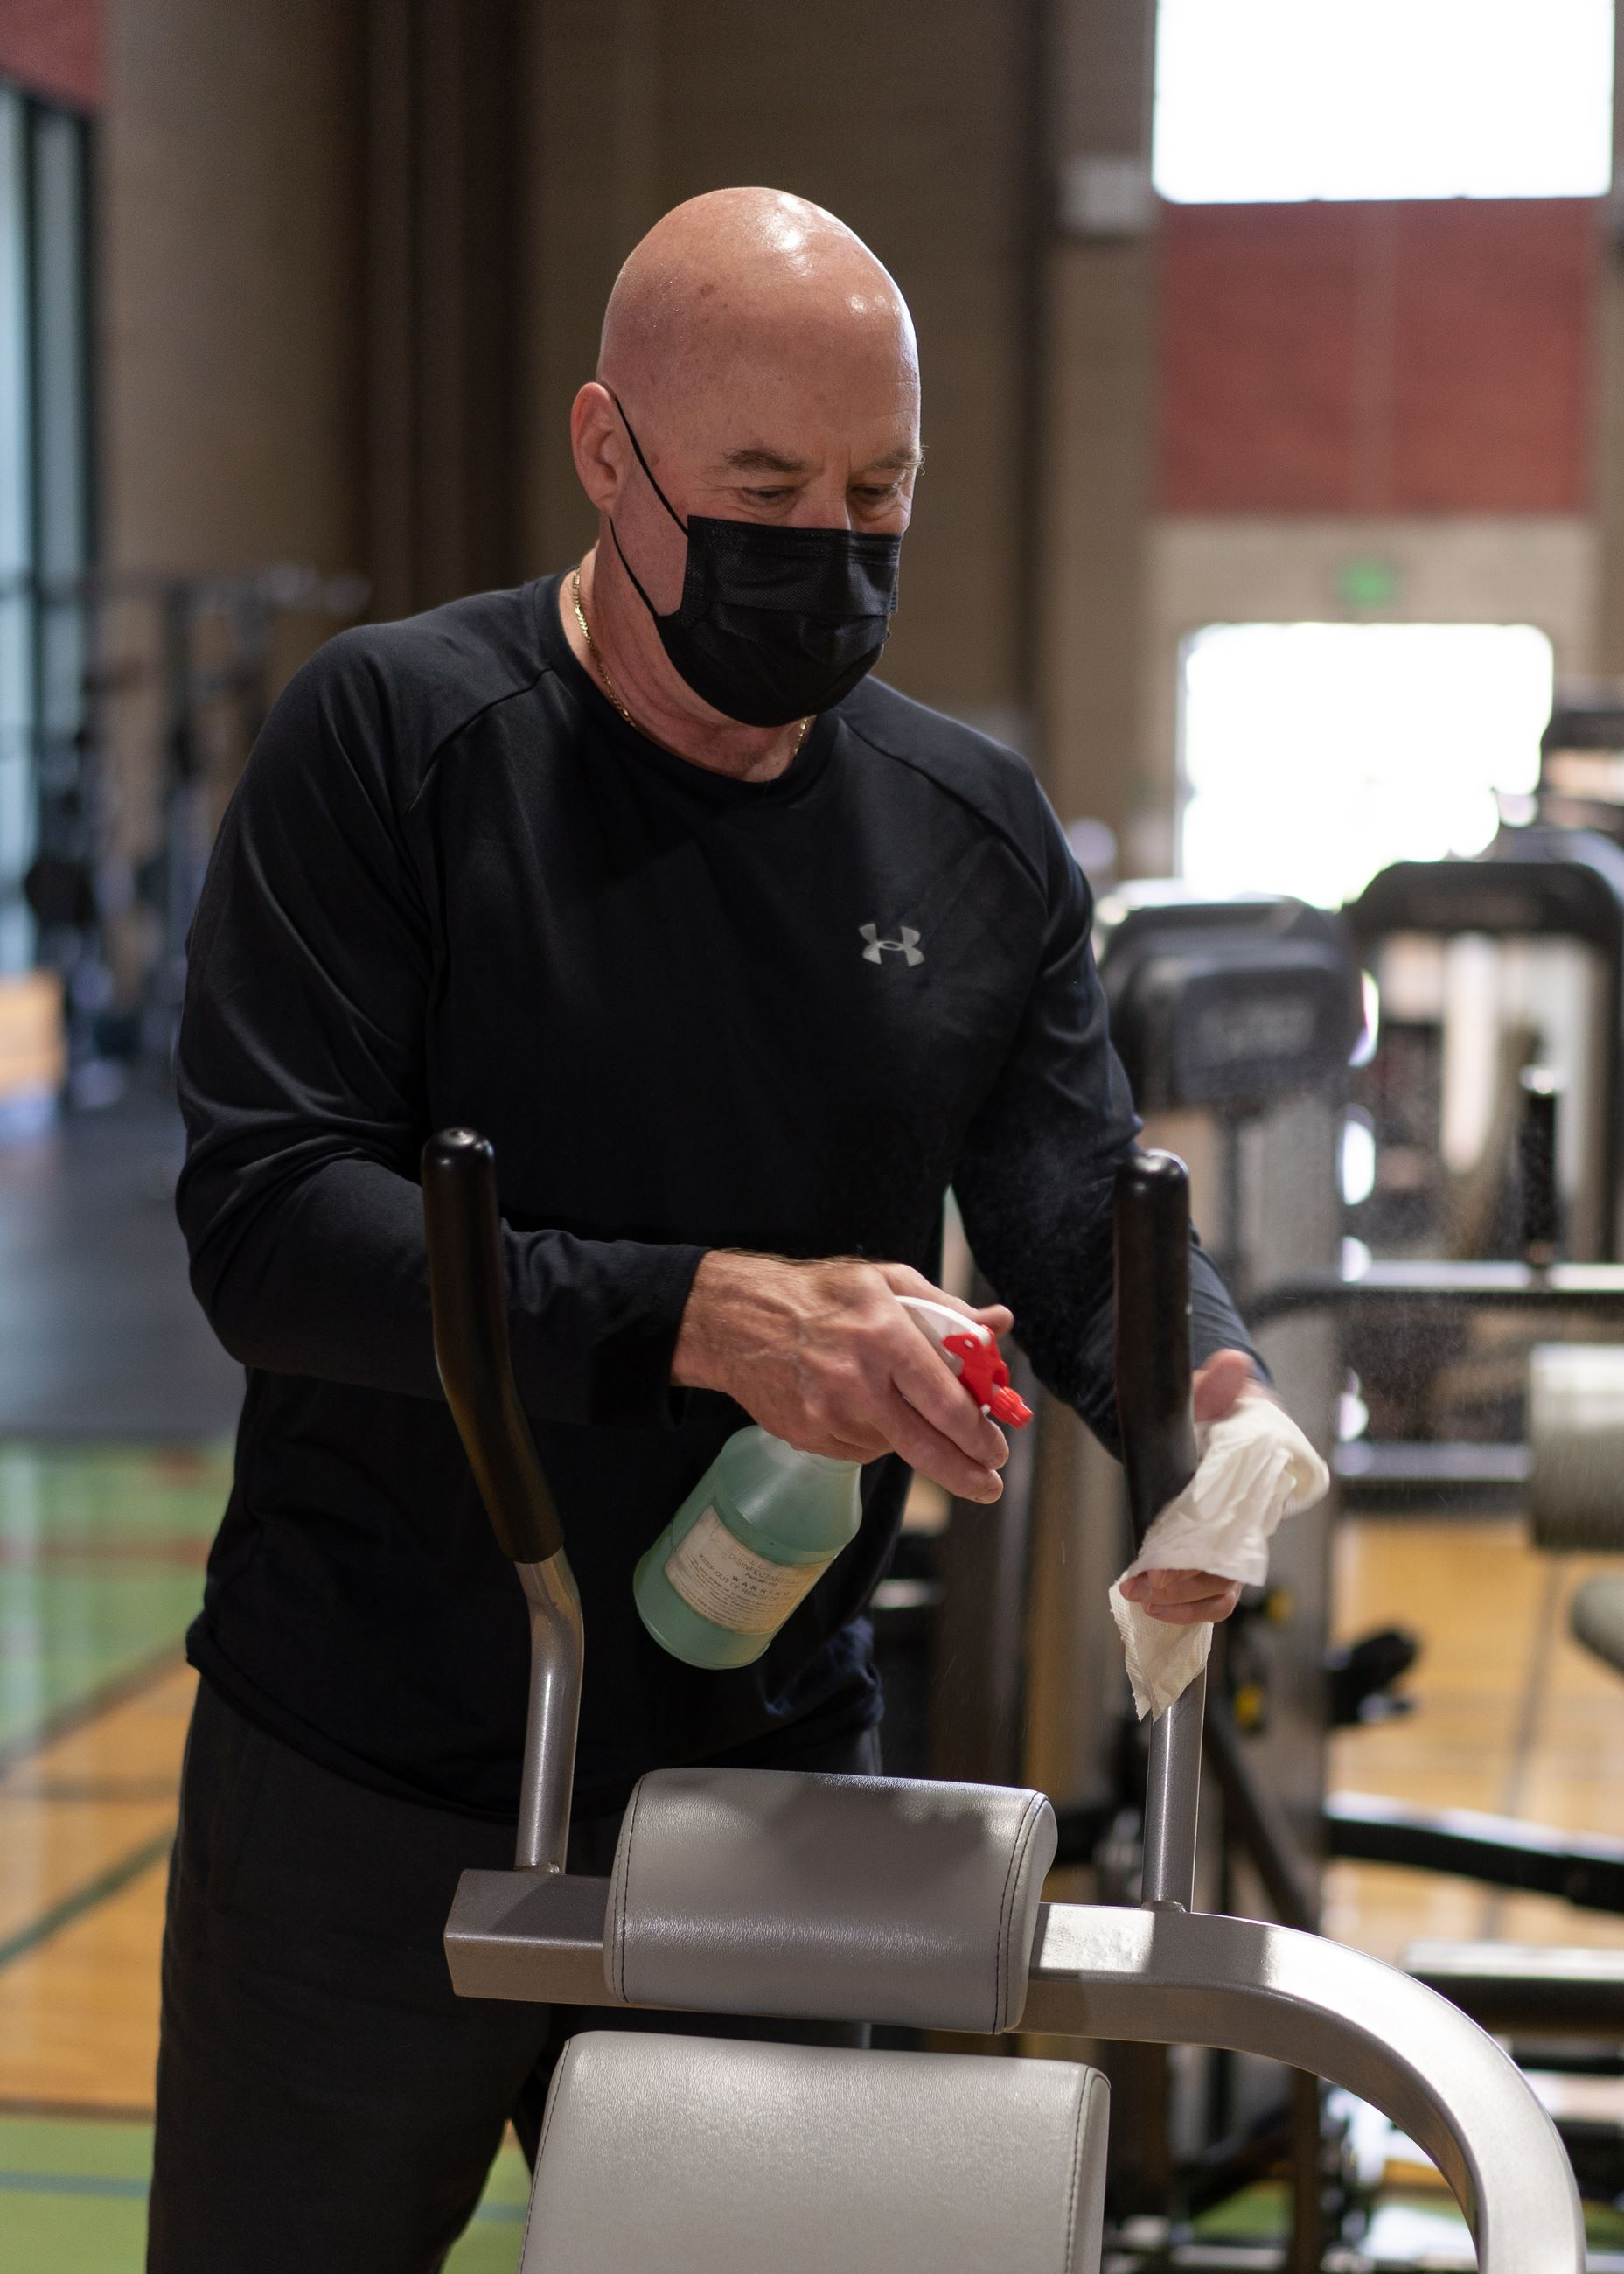 Man wearing a mask cleans the fitness equipment